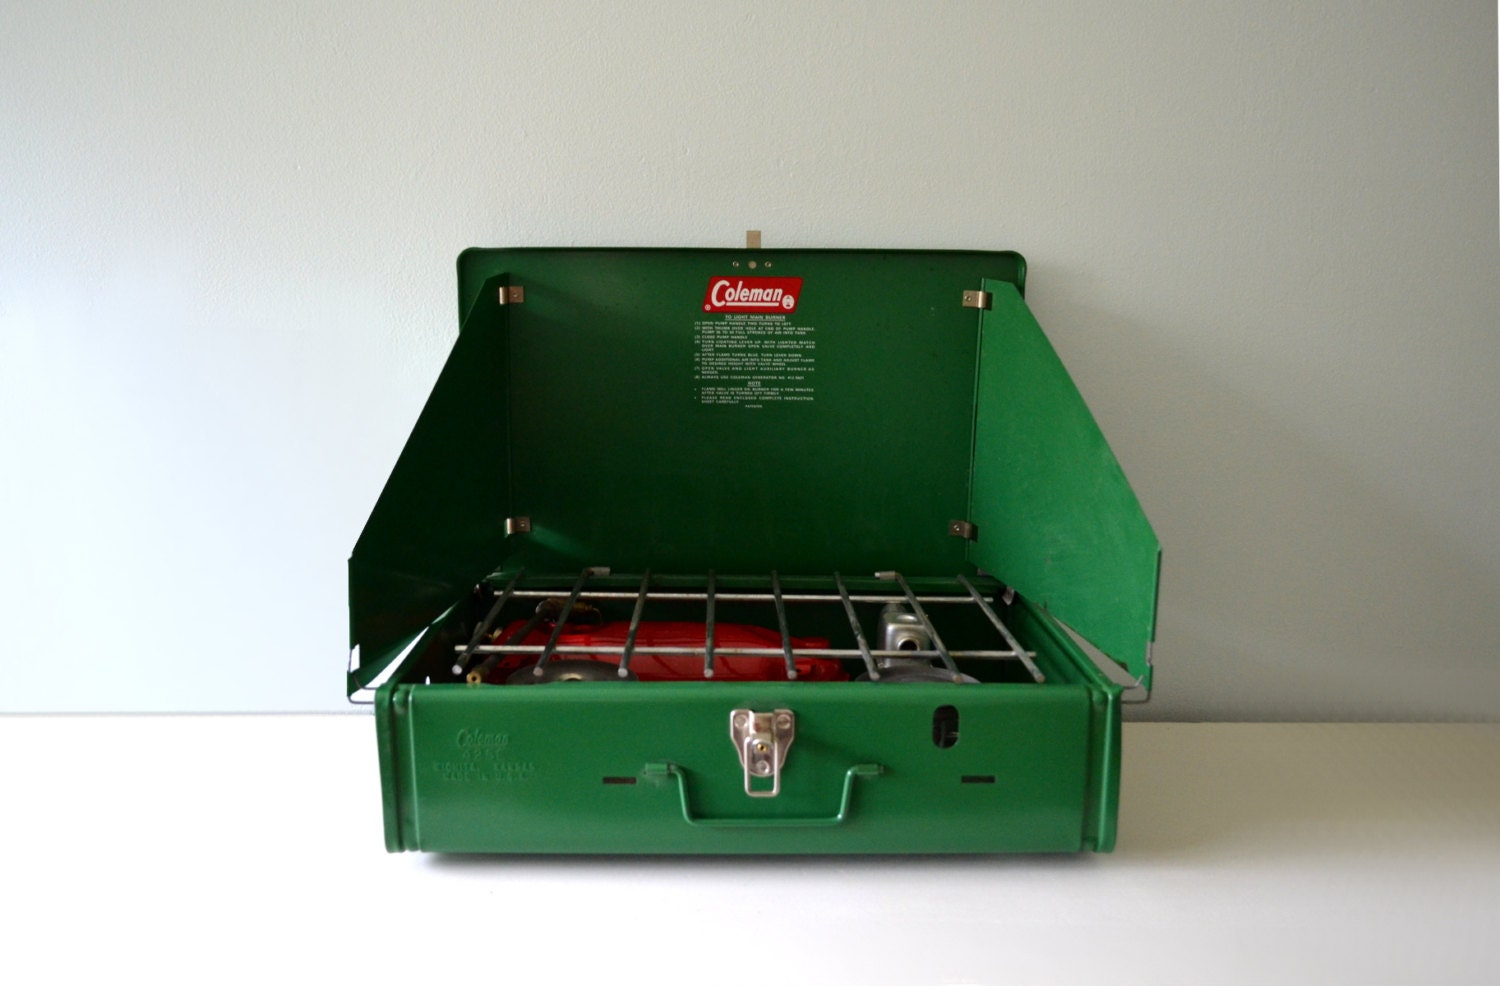 Vintage coleman stove 1970s camping stove 2 burner cooktop grill